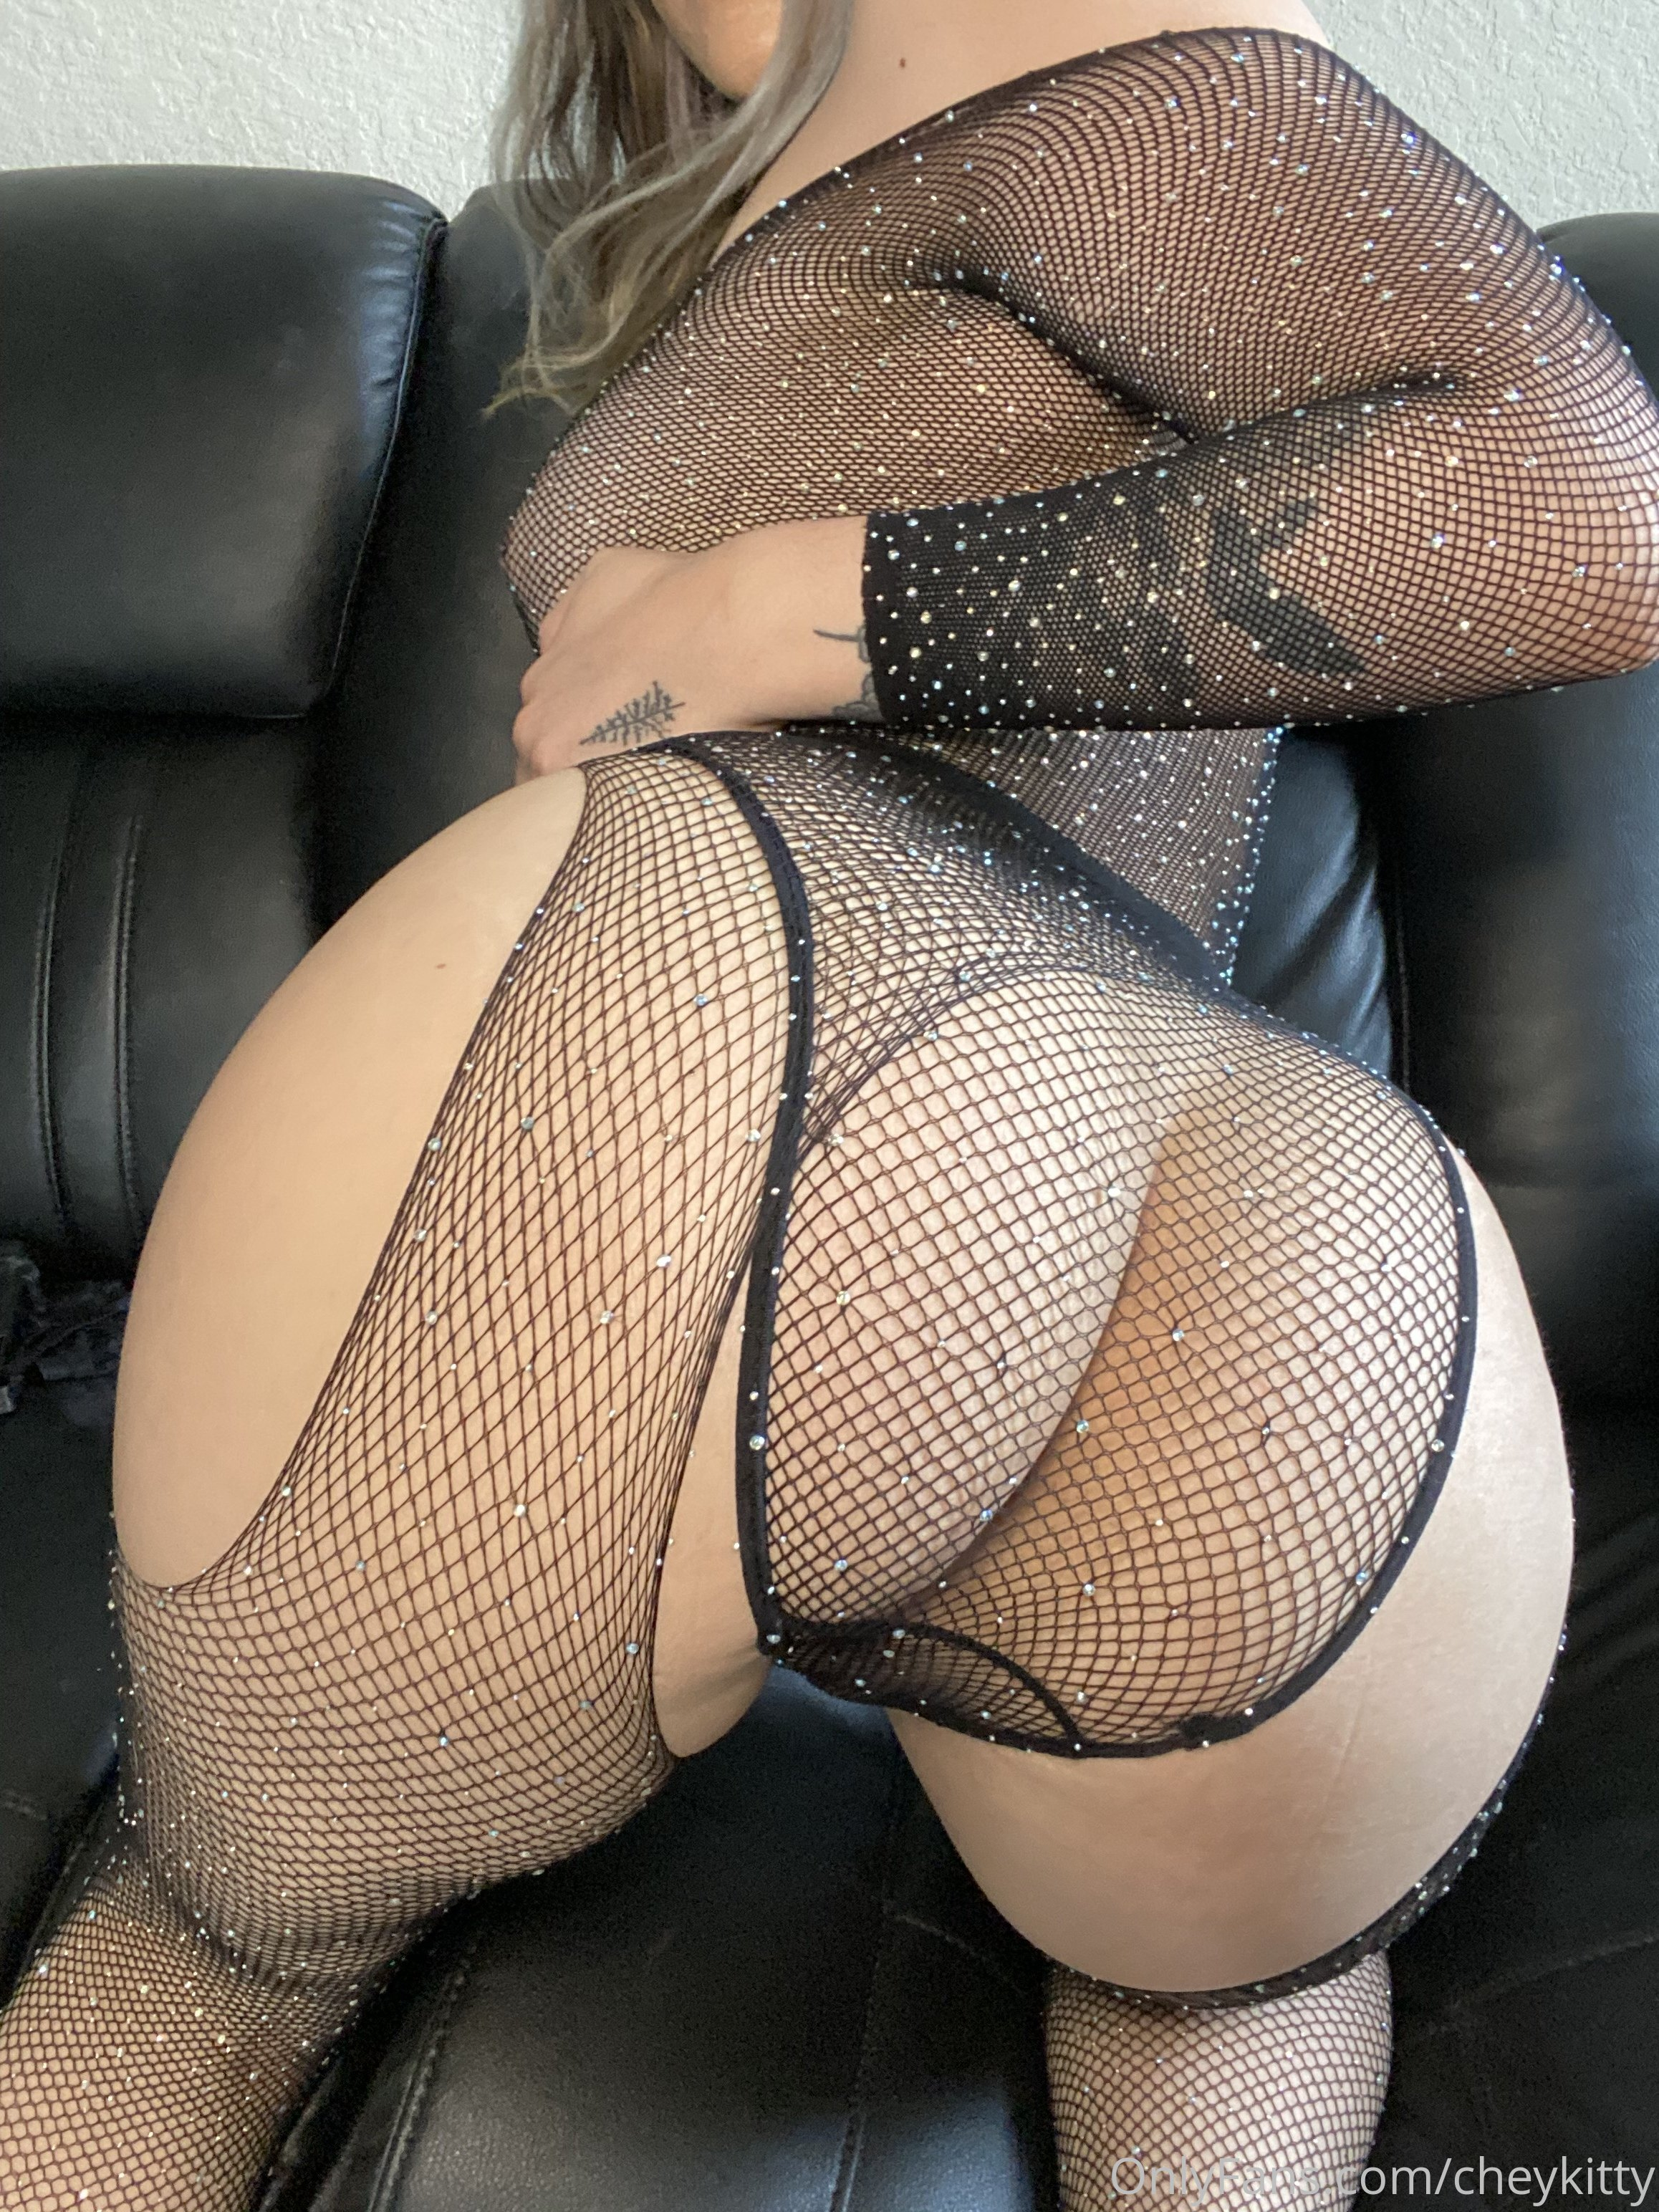 Cheykitty Onlyfans Leaked 0058